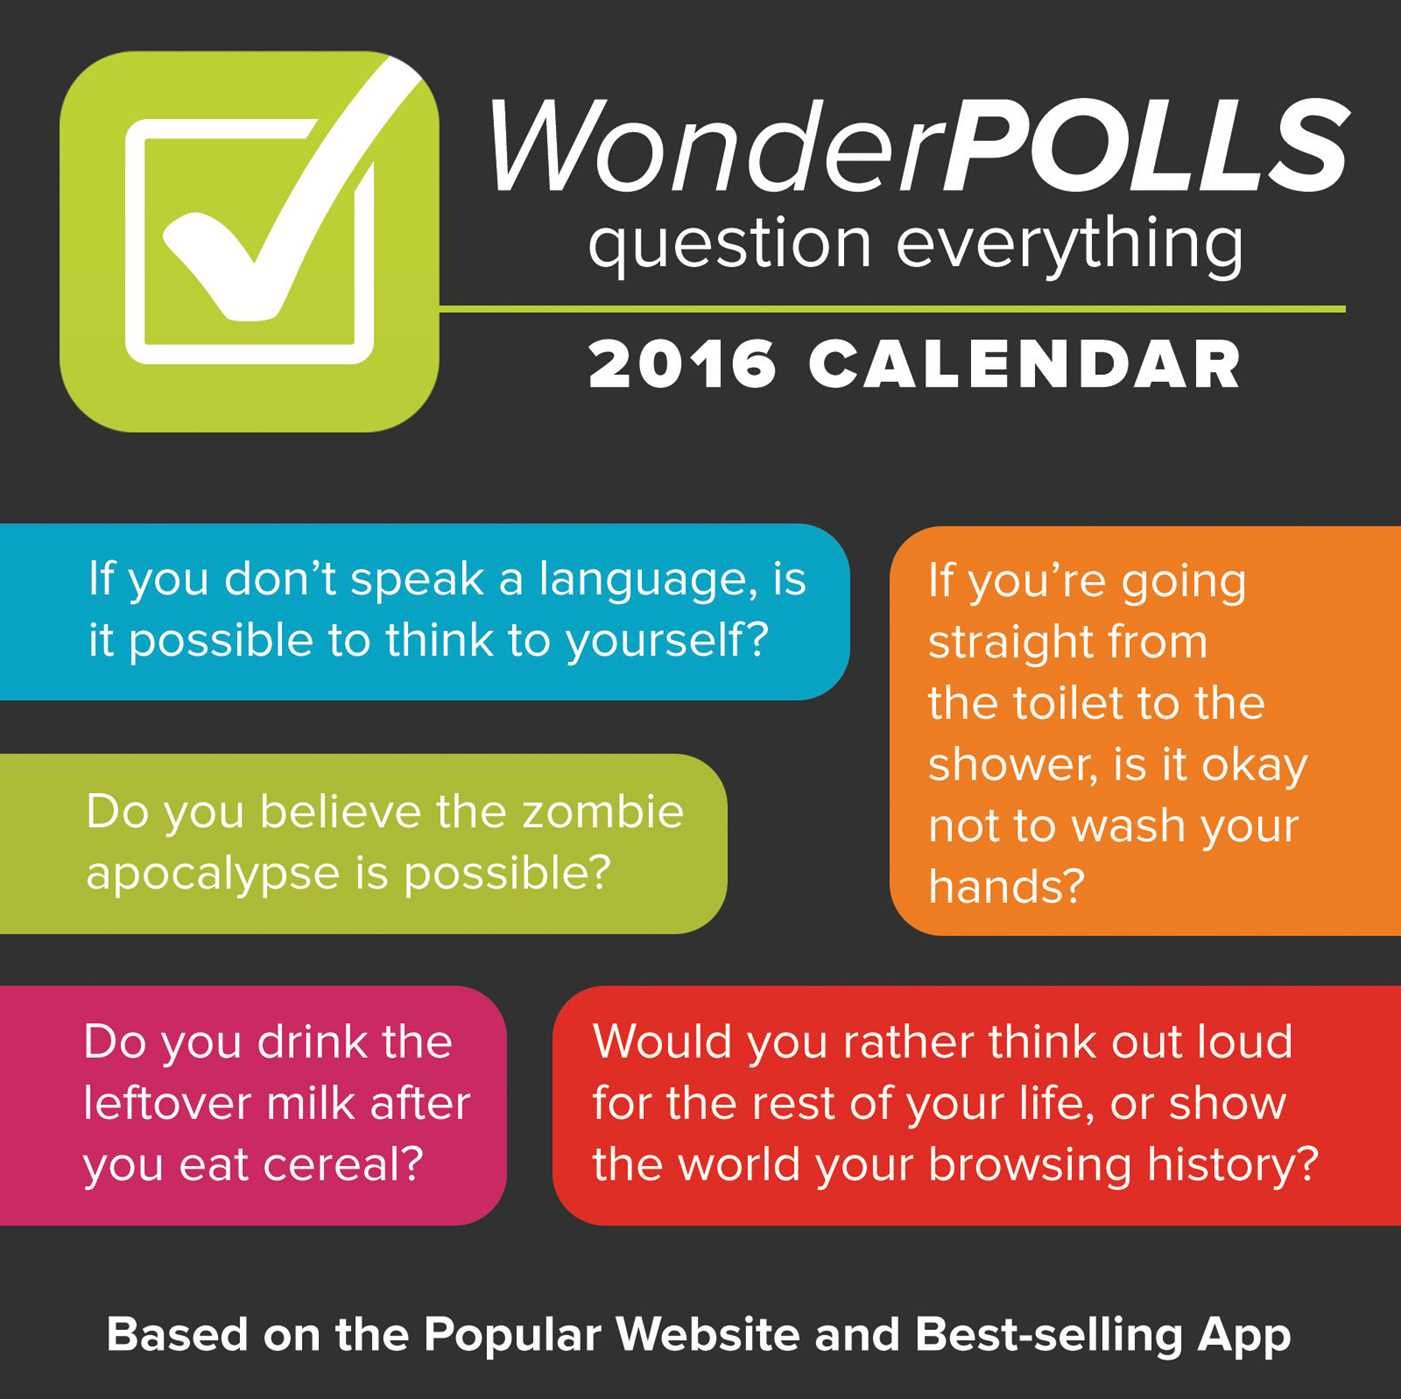 Wonderpolls question everything 2016 day to day calendar tim 2016 day to day calendar tim busbee 9781449470647 amazon books solutioingenieria Choice Image